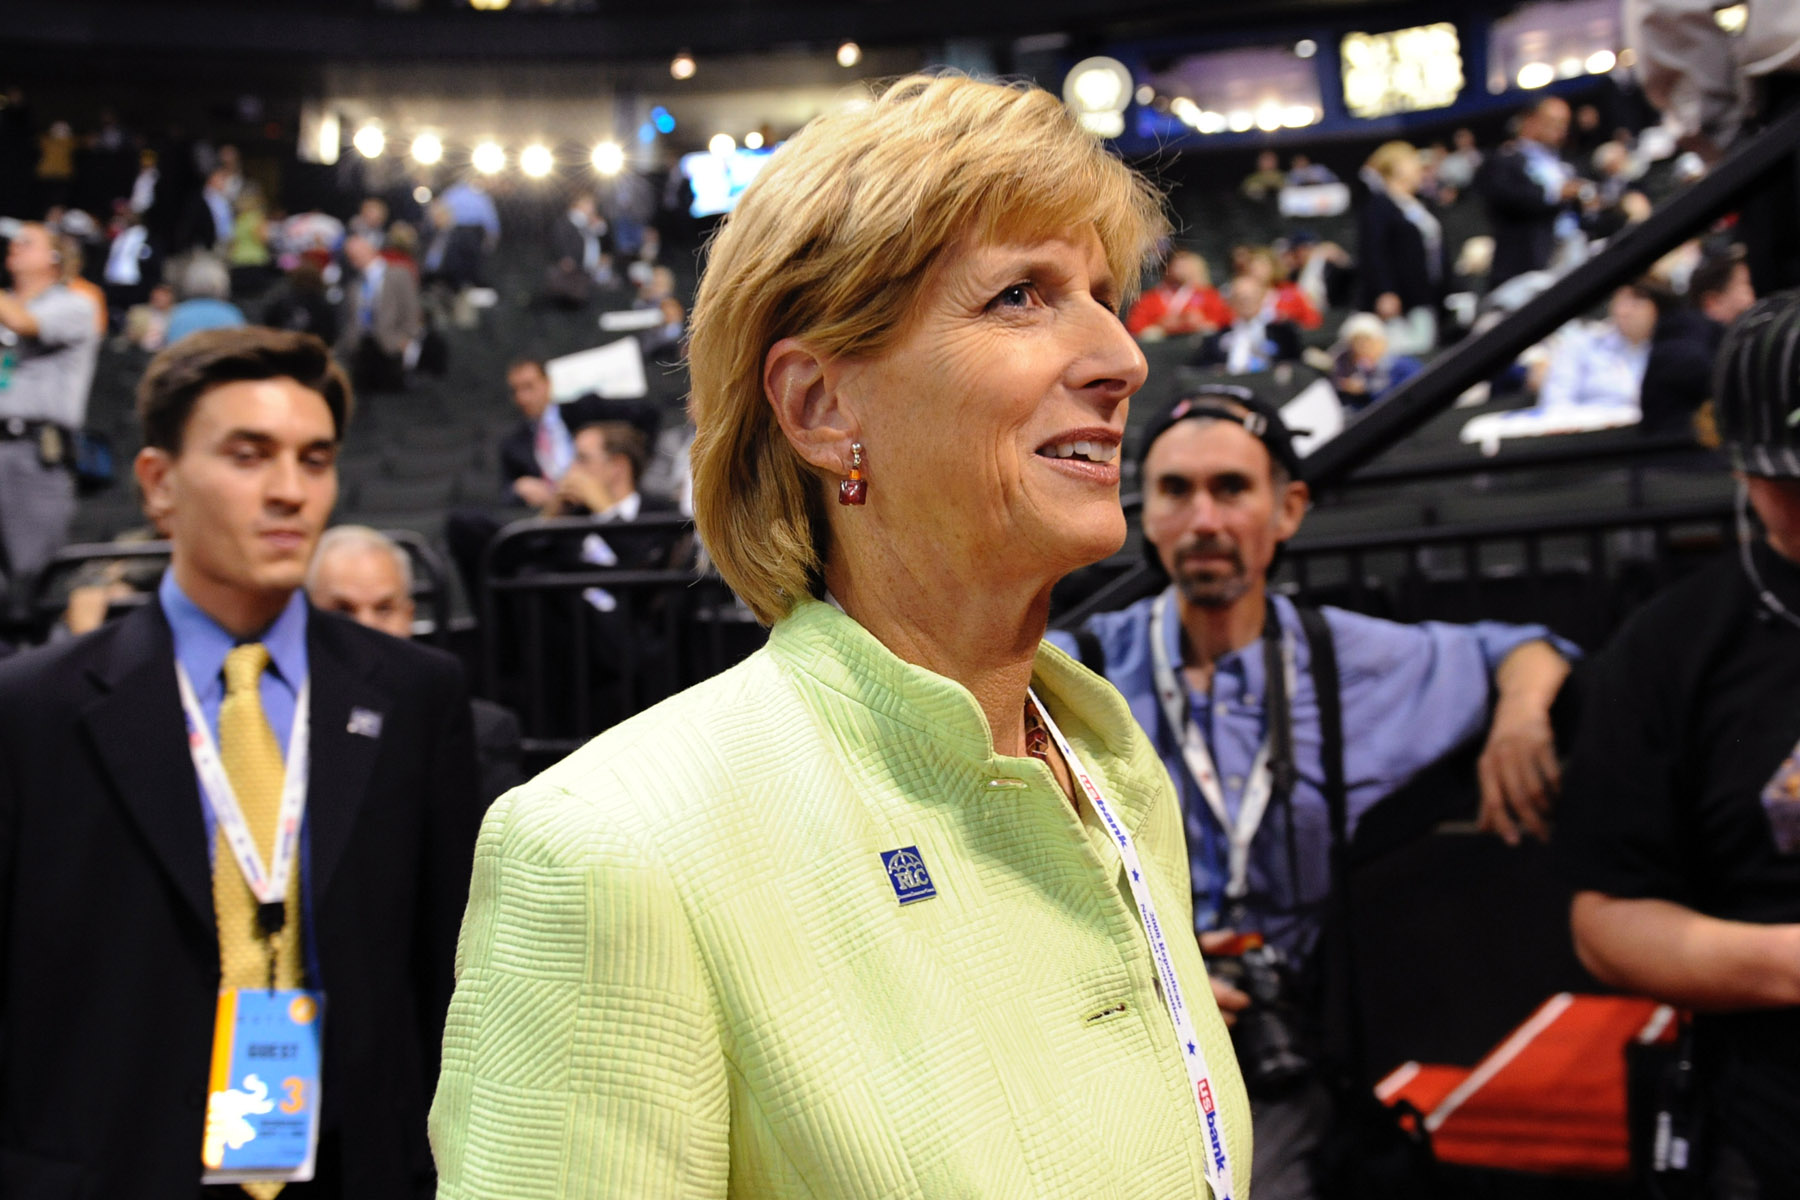 Former Environmental Protection Agency Administrator Christine Todd Whitman walks on the floor of the Republican National Convention in St. Paul, Minn., Wednesday, Sept. 3, 2008. Photo: Susan Walsh / AP